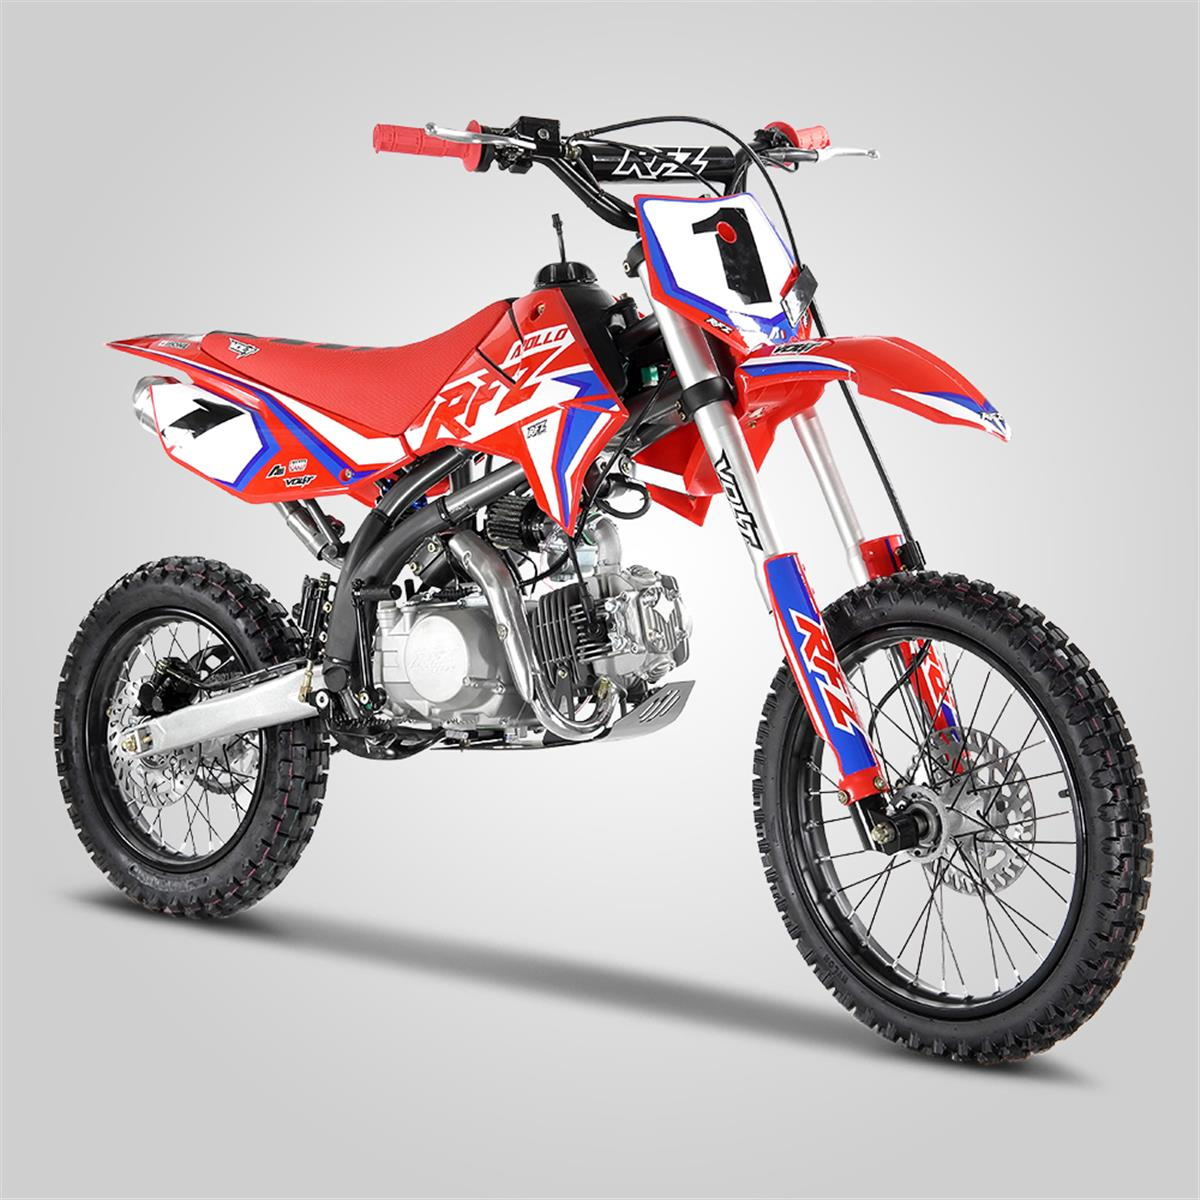 DIRT BIKE APOLLO RFZ OPEN ENDURO 125 14/17 2020